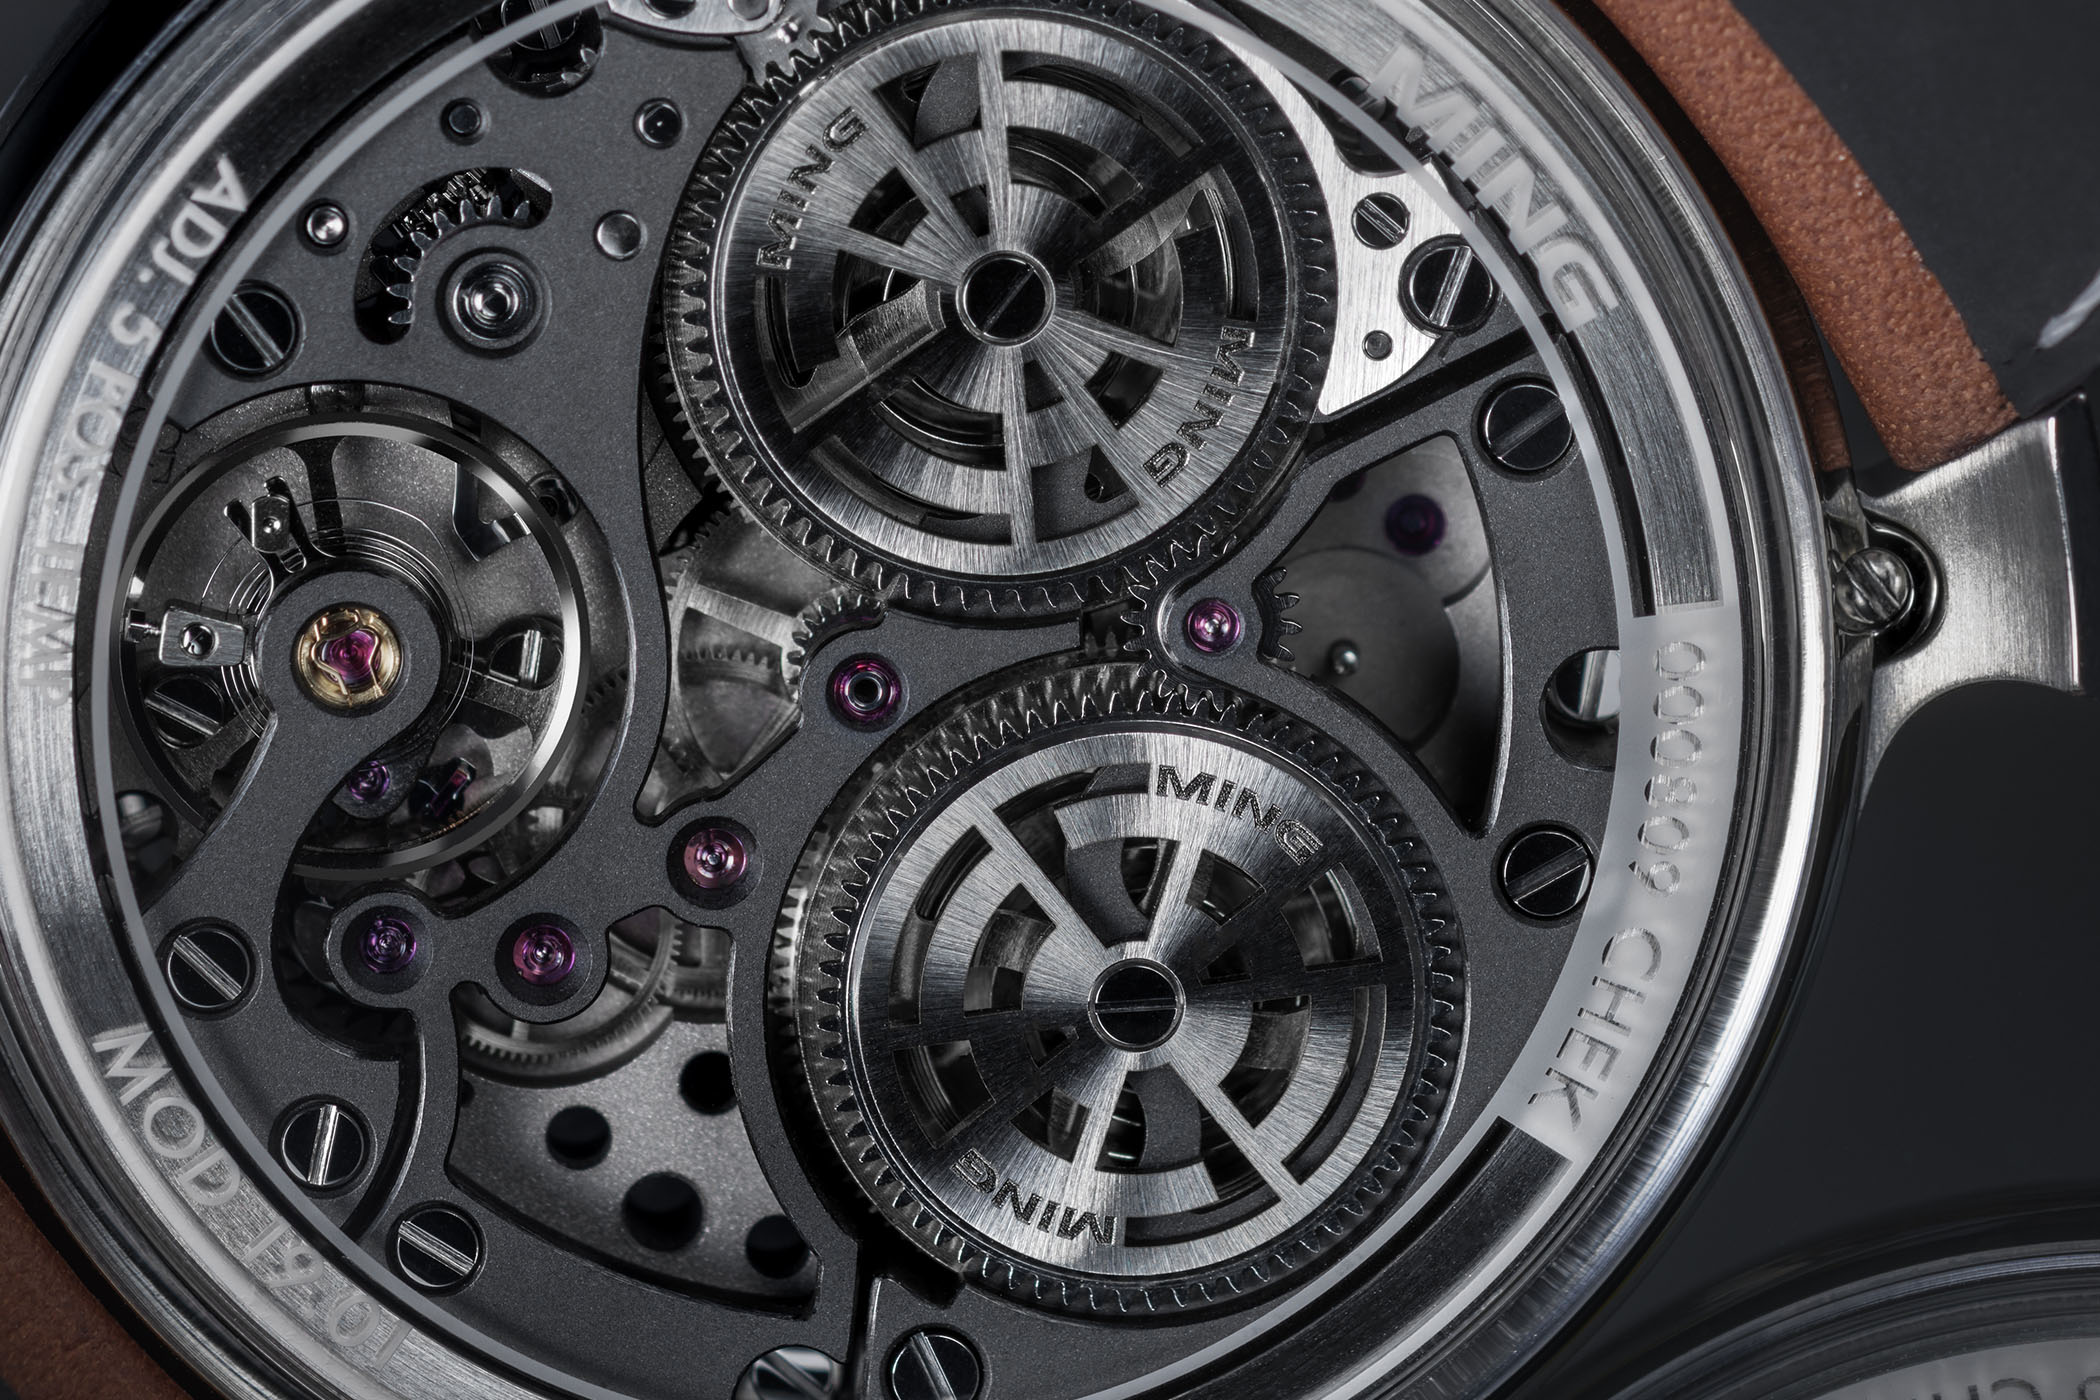 MING 19.01 With Exclusive Movement By Schwarz Etienne